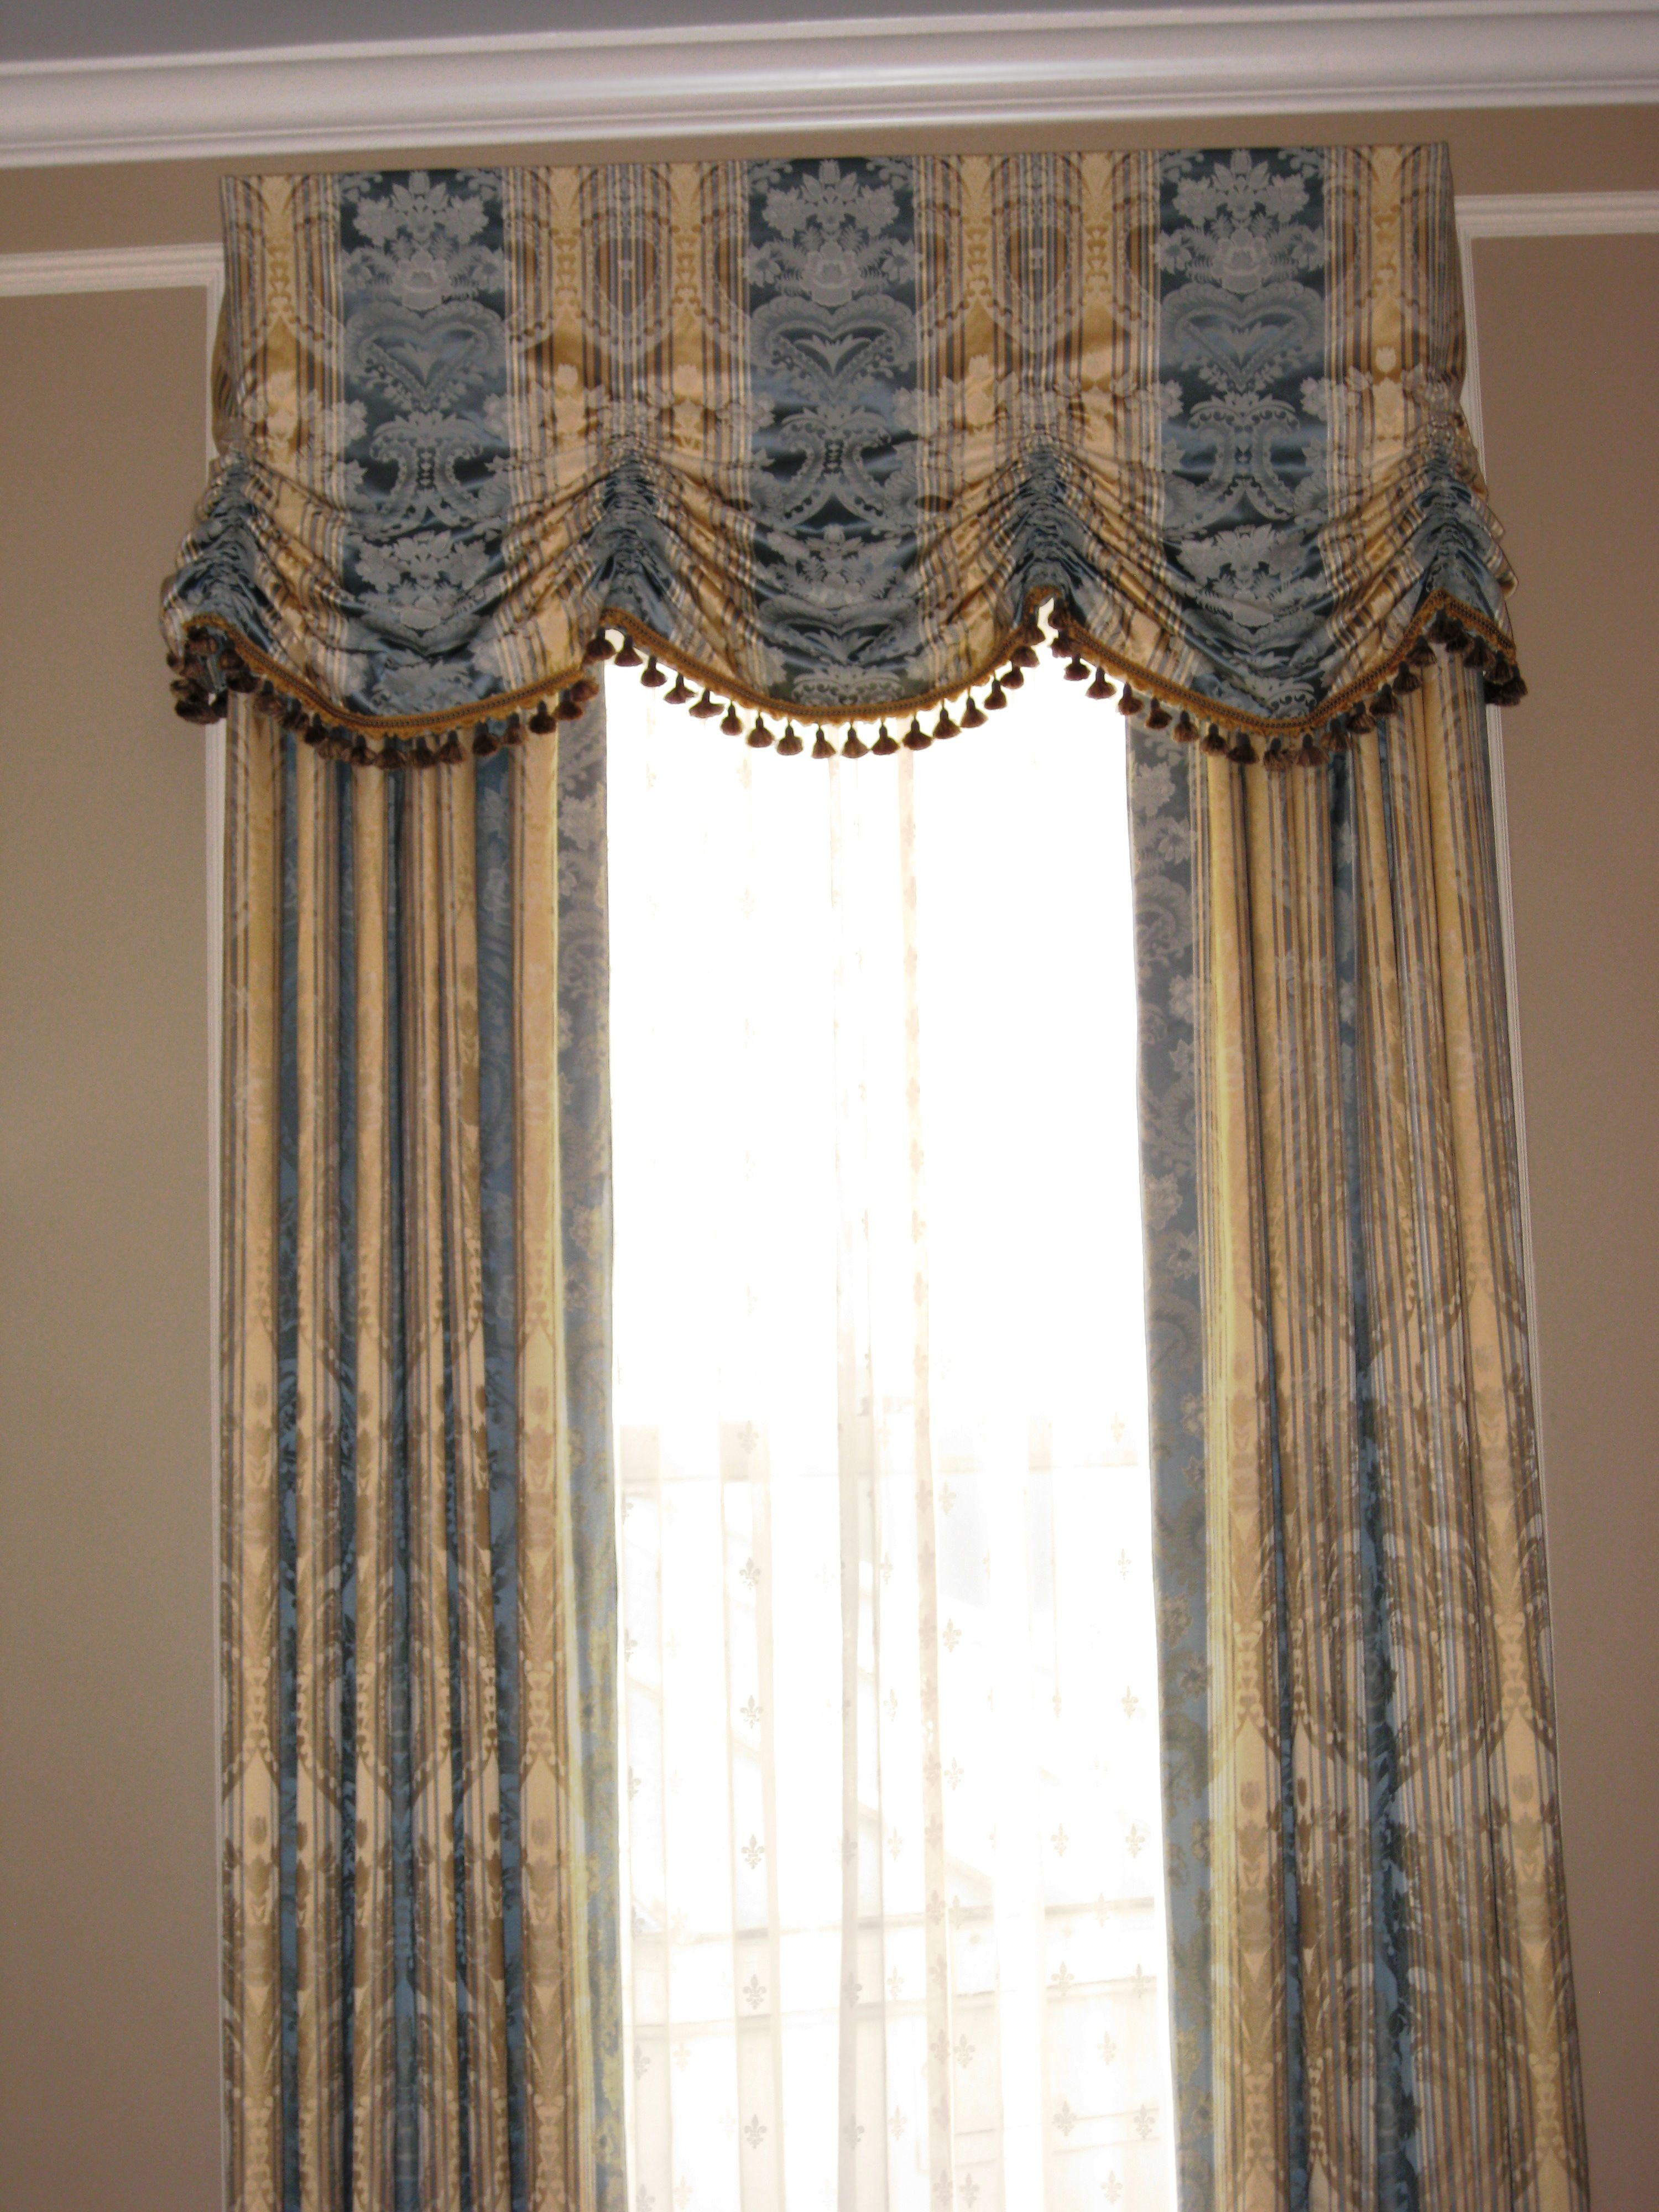 Www Magnolialane Com Festoon Shirred Valance With Tassel